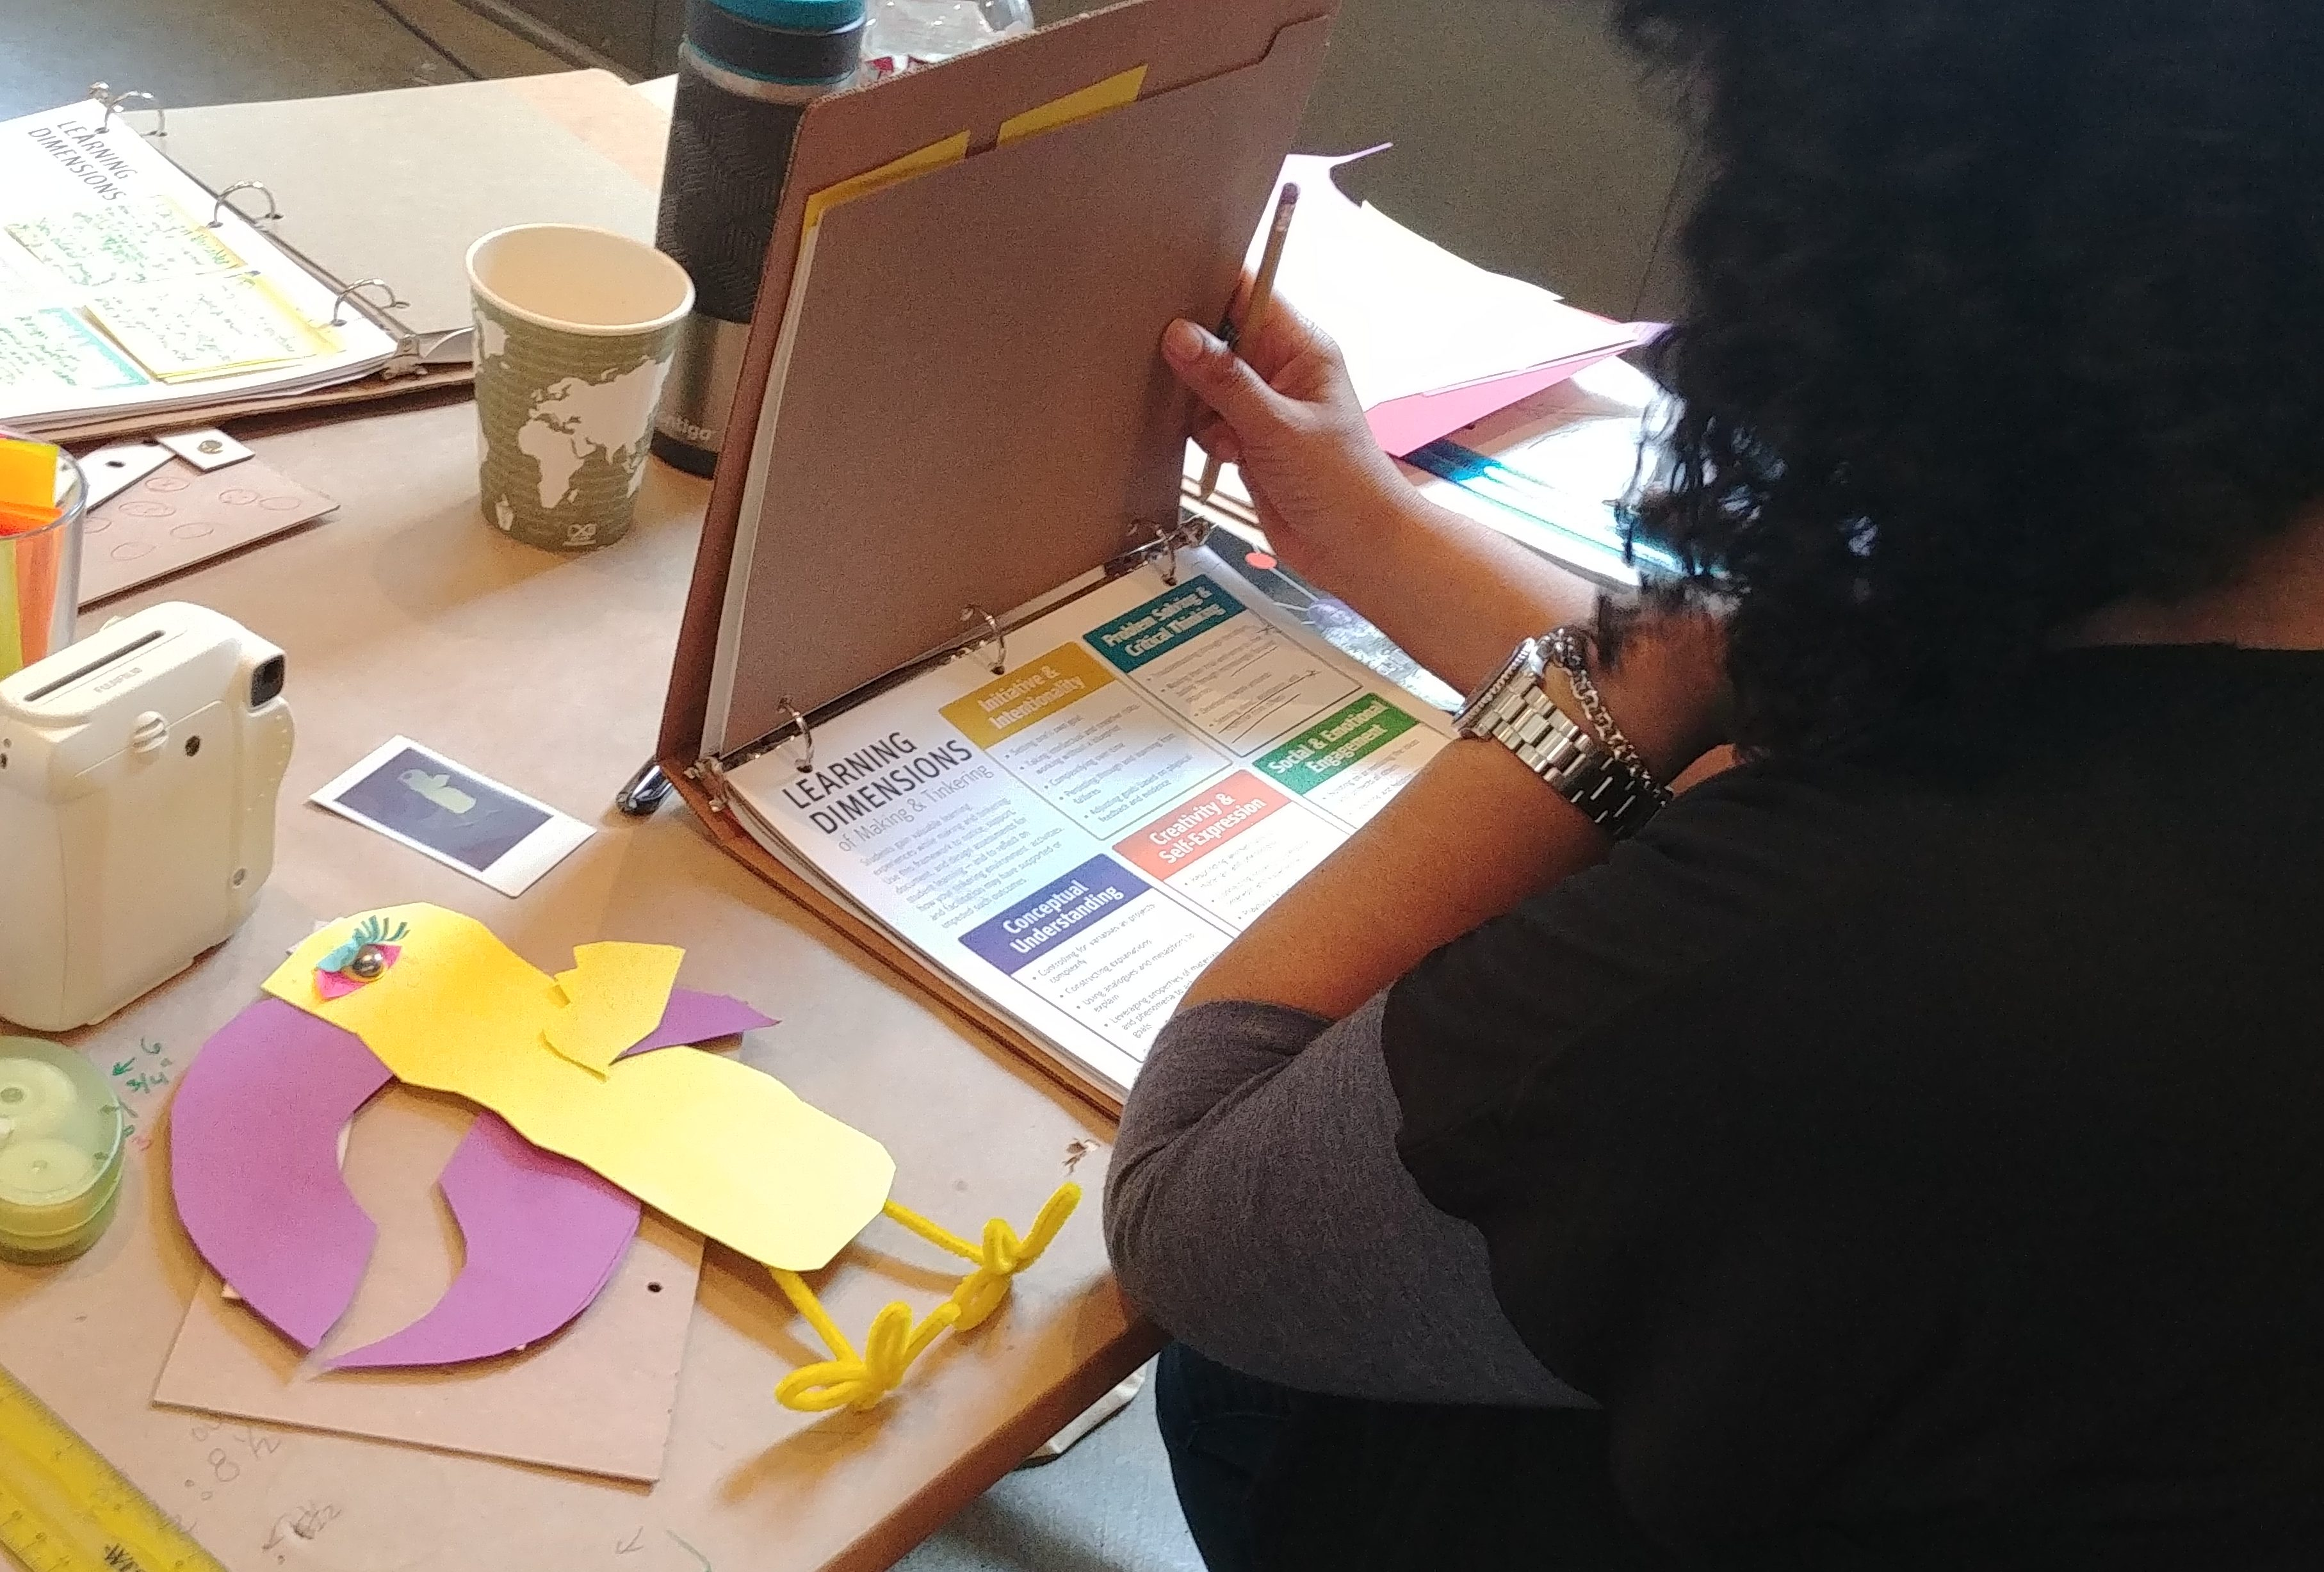 A workshop participant with curly, black hair looks at the learning dimensions of making and tinkering handout.